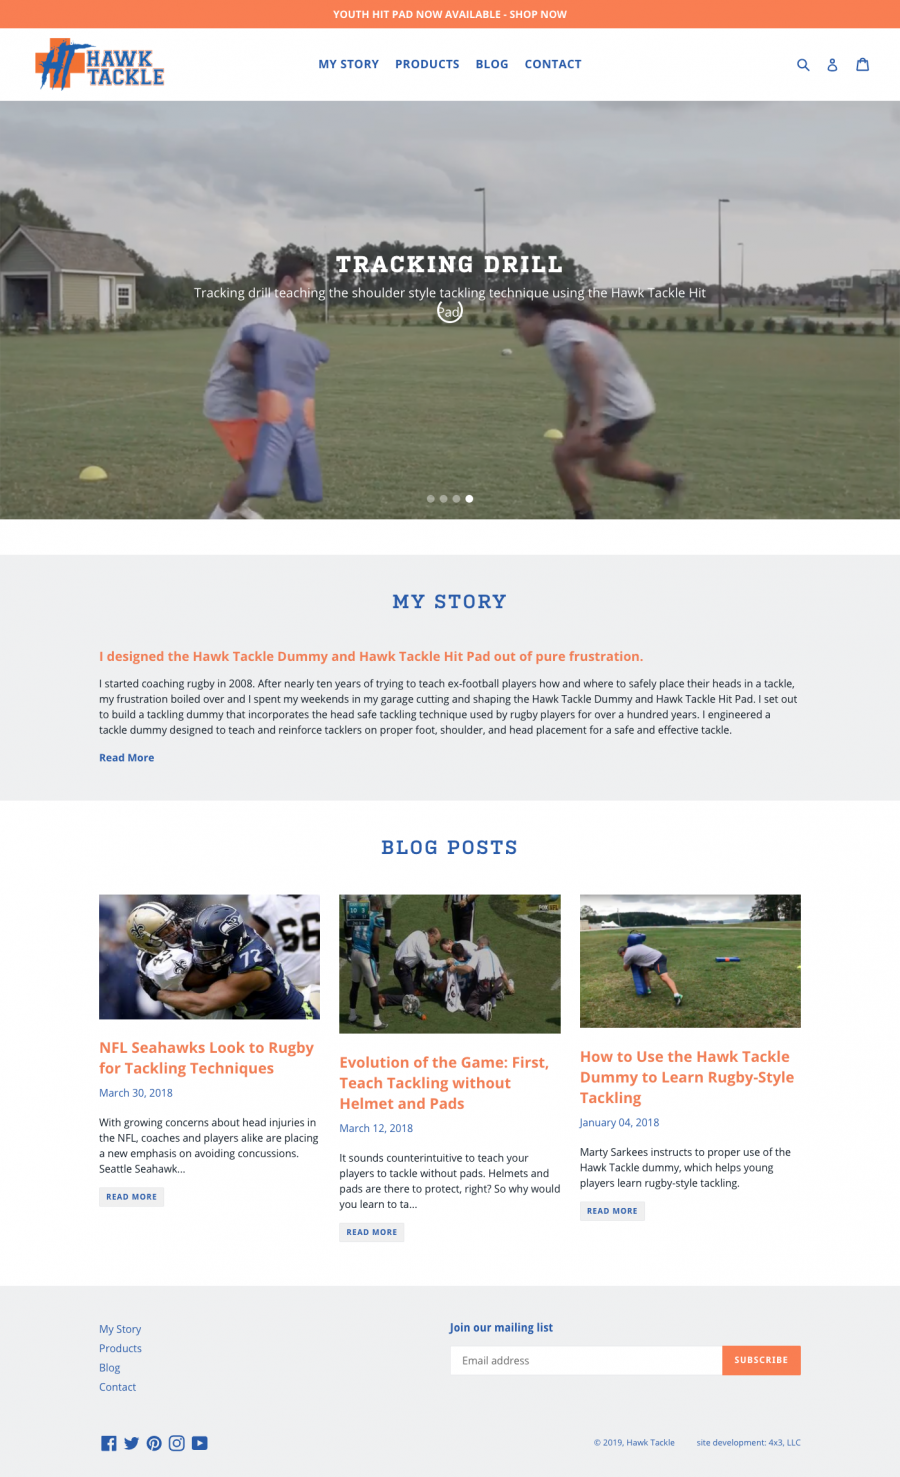 Hawk Tackle Homepage containing an overview of brand message